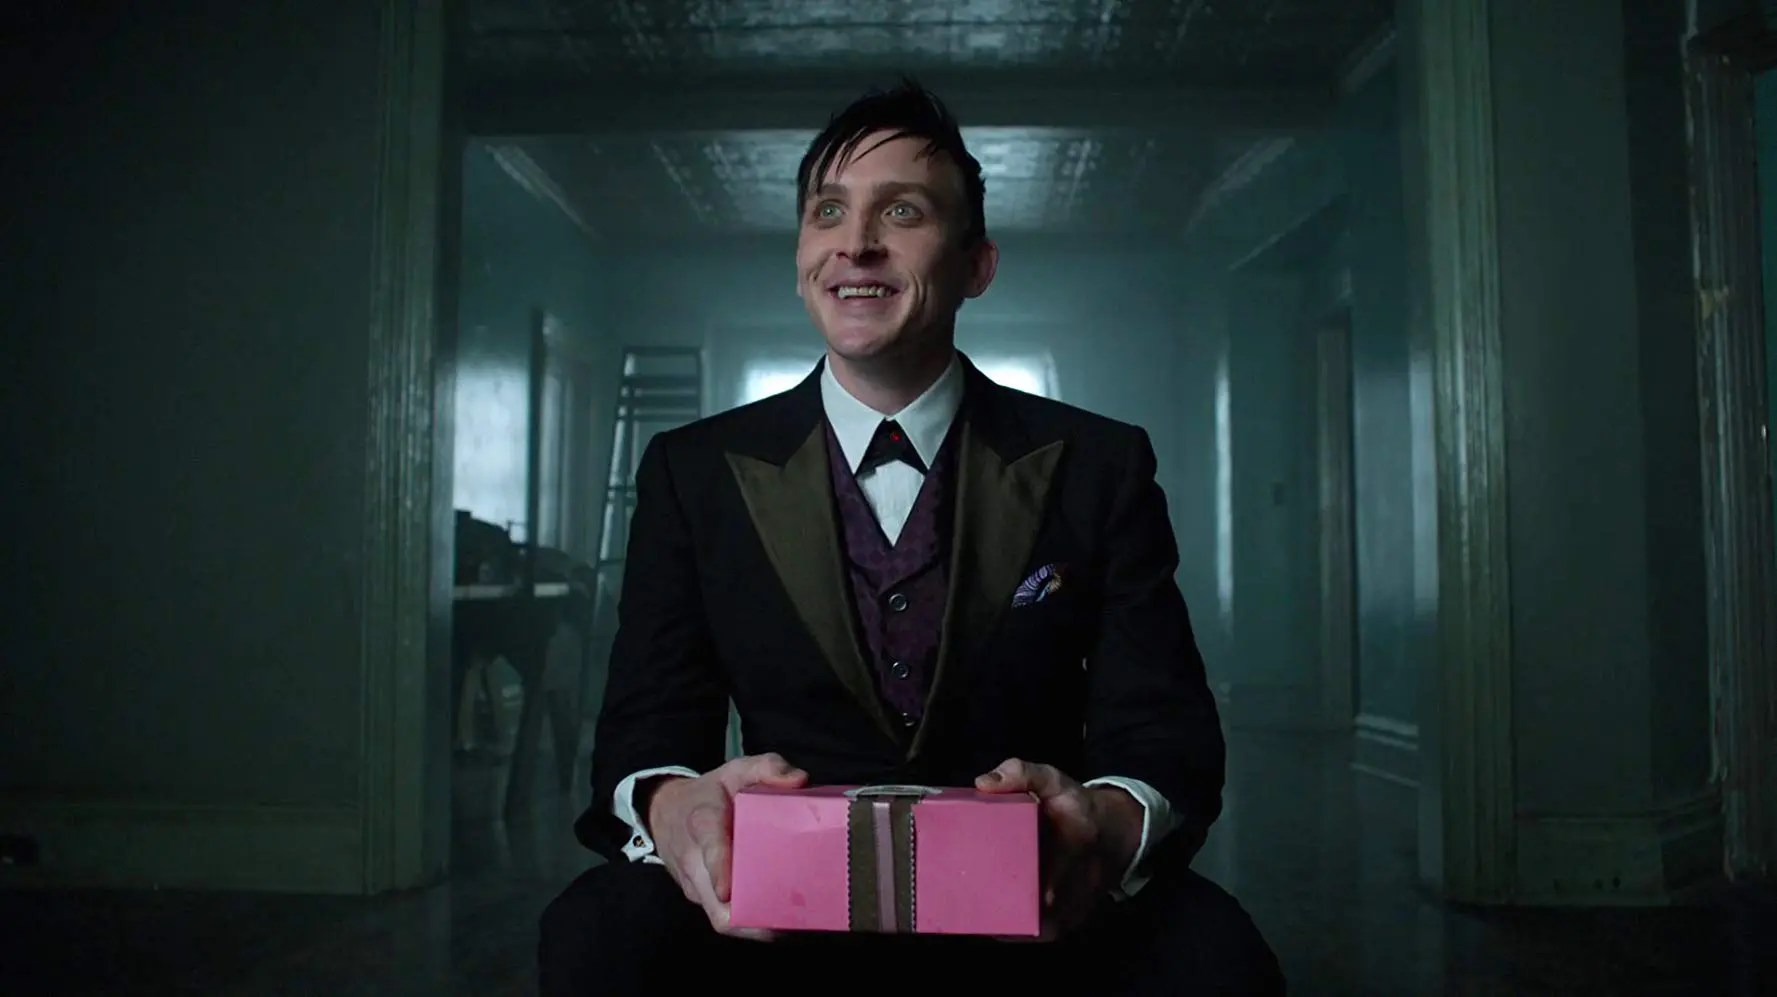 The Penguin holding a gift